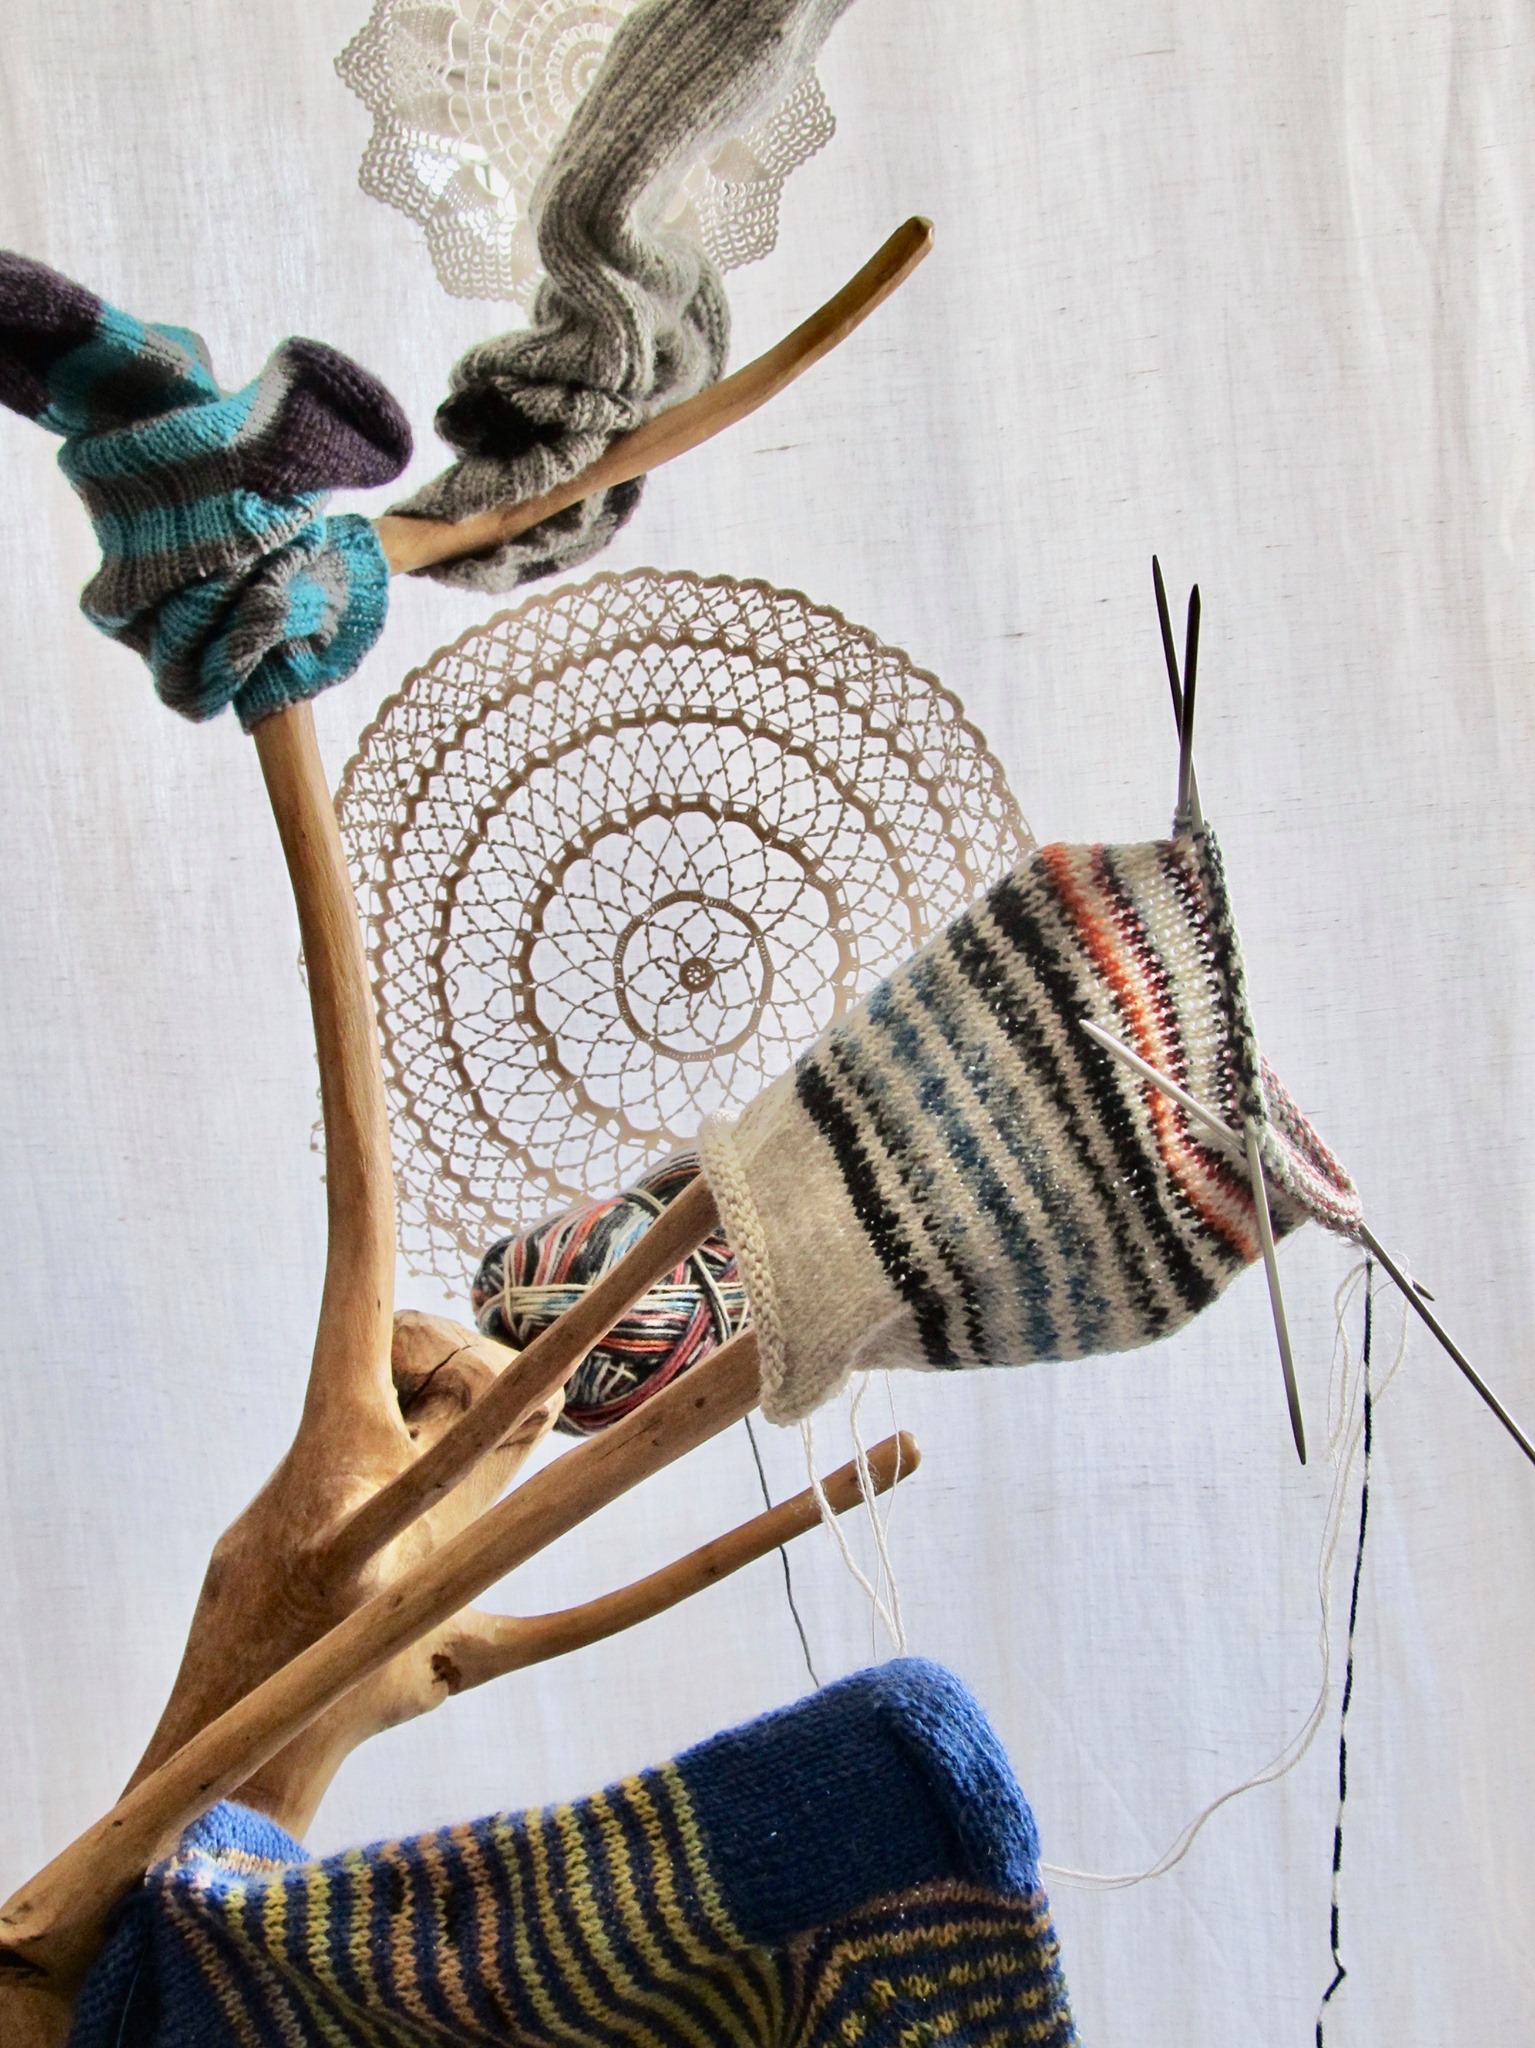 Tricot com 5 agulhas - Knitting with 5 needles